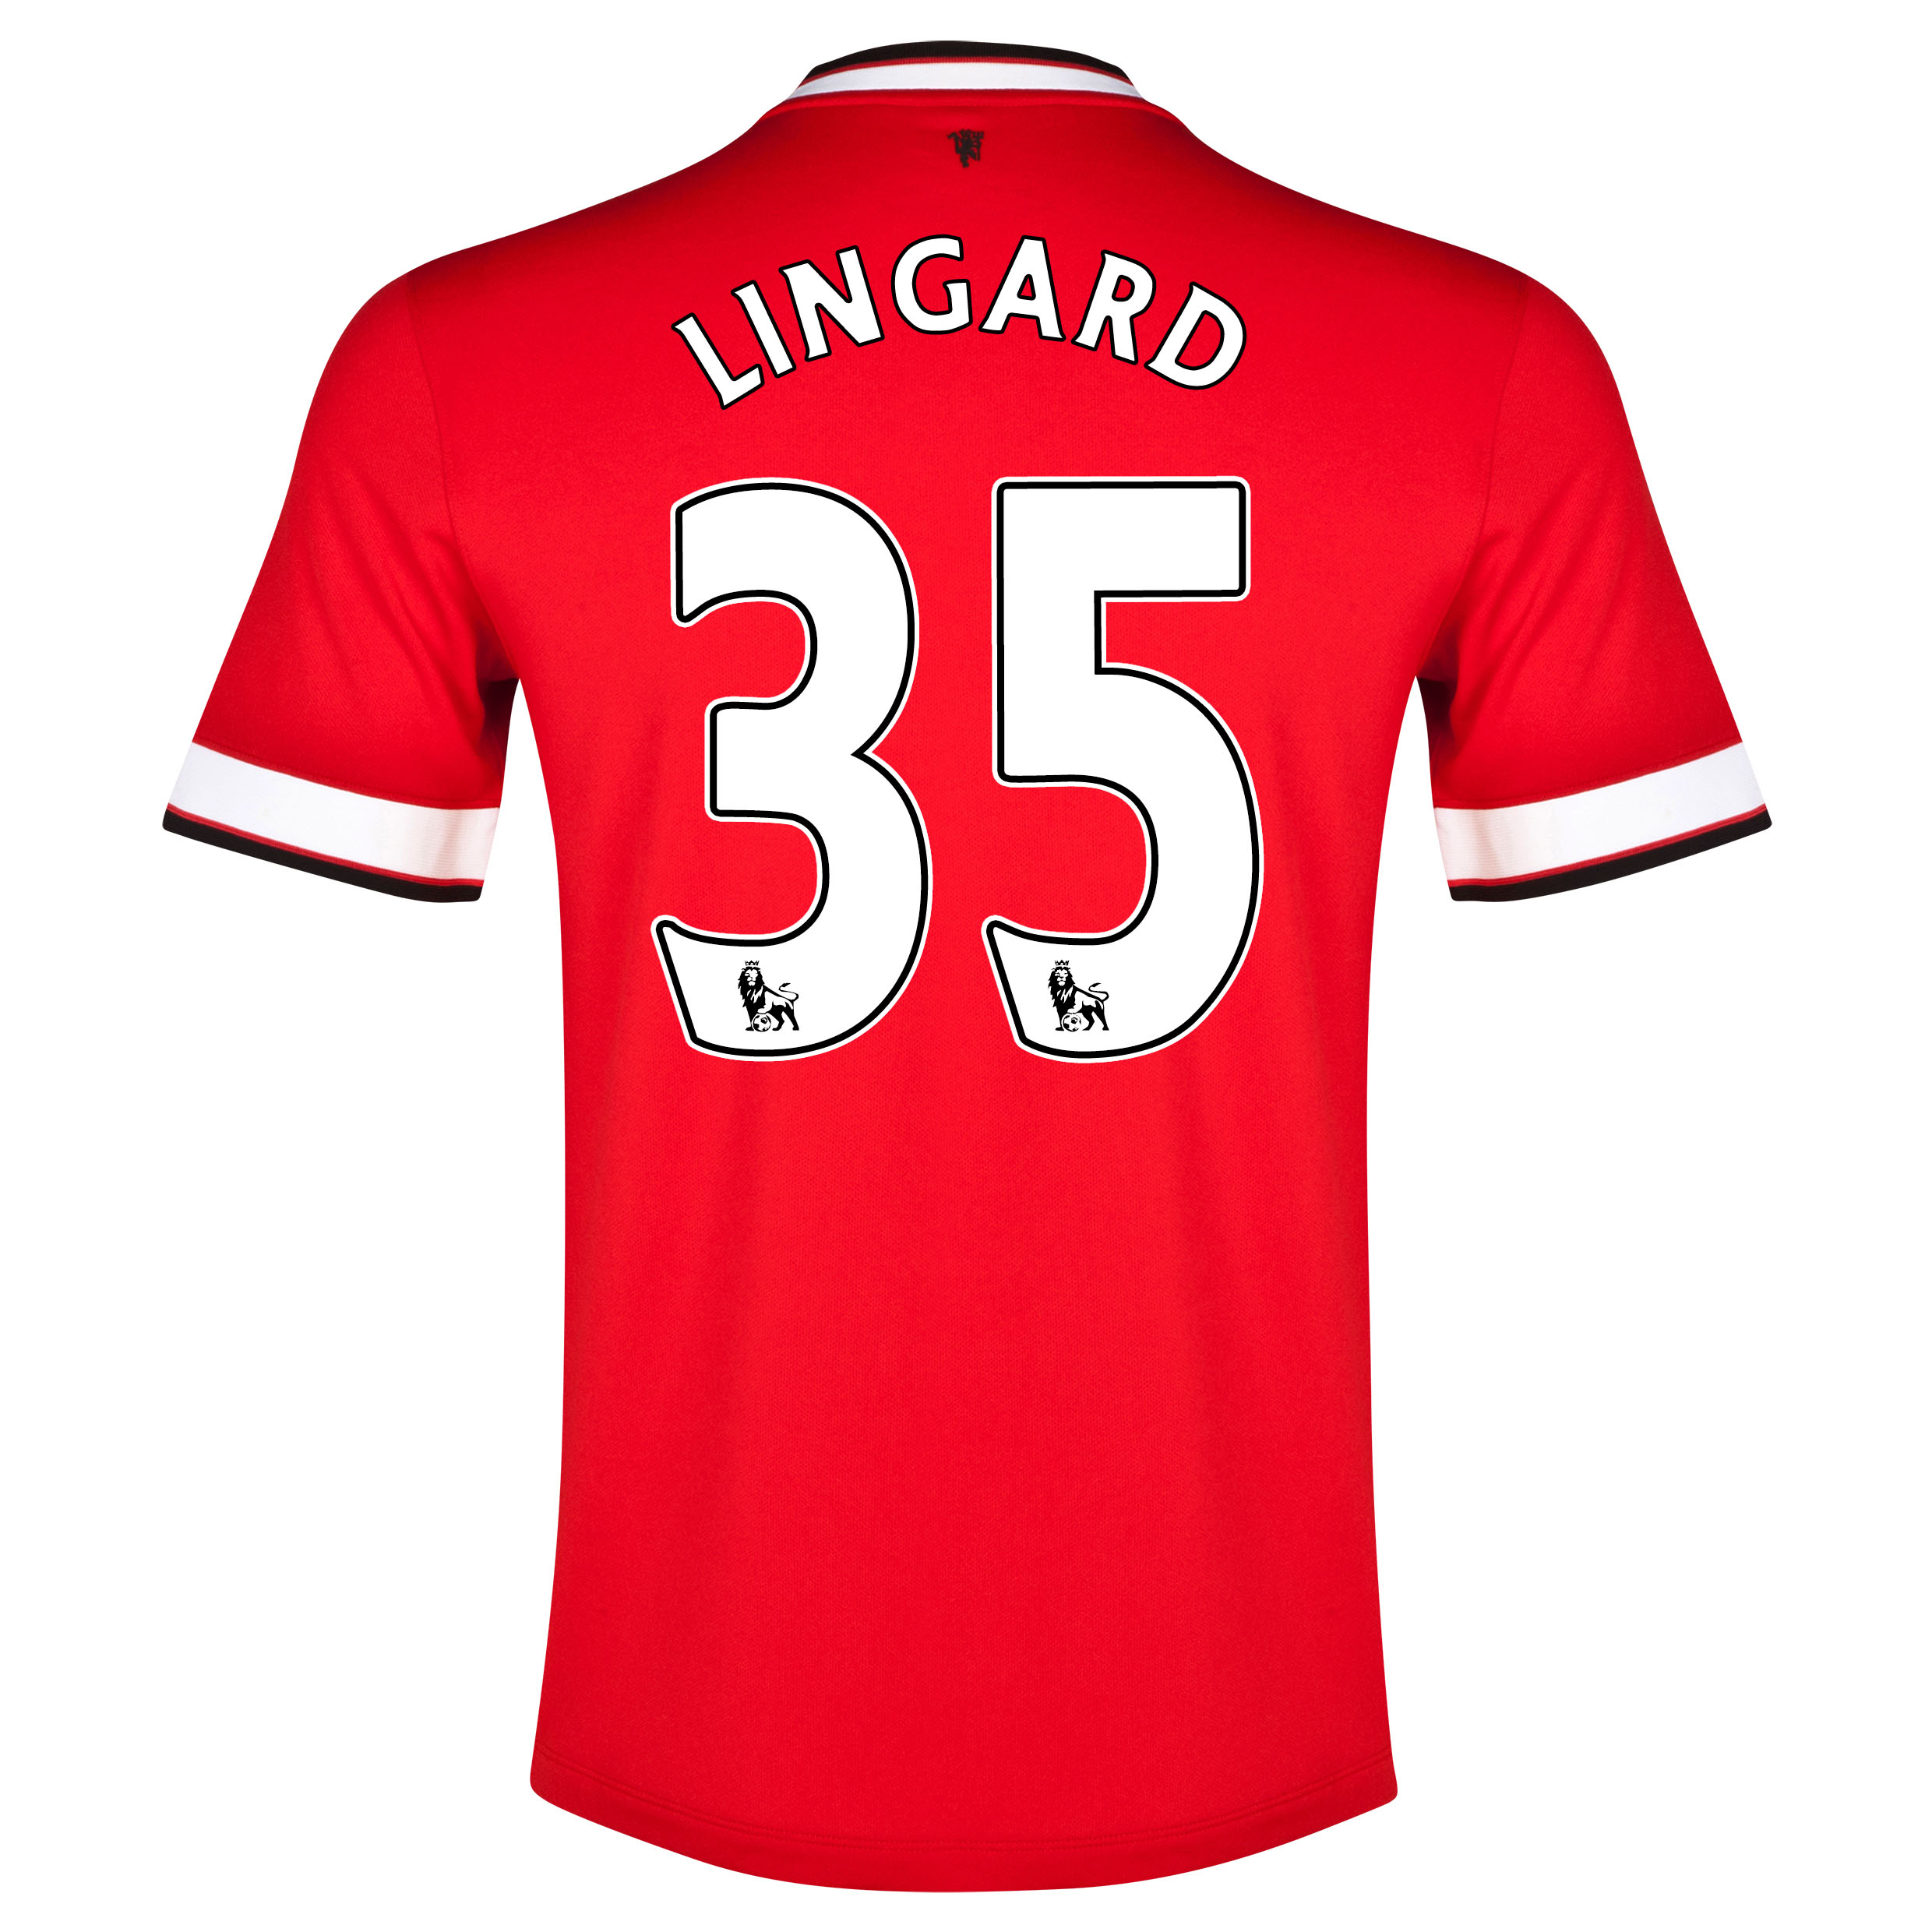 Manchester United Home Shirt 2014/15 with Lingard 35 printing